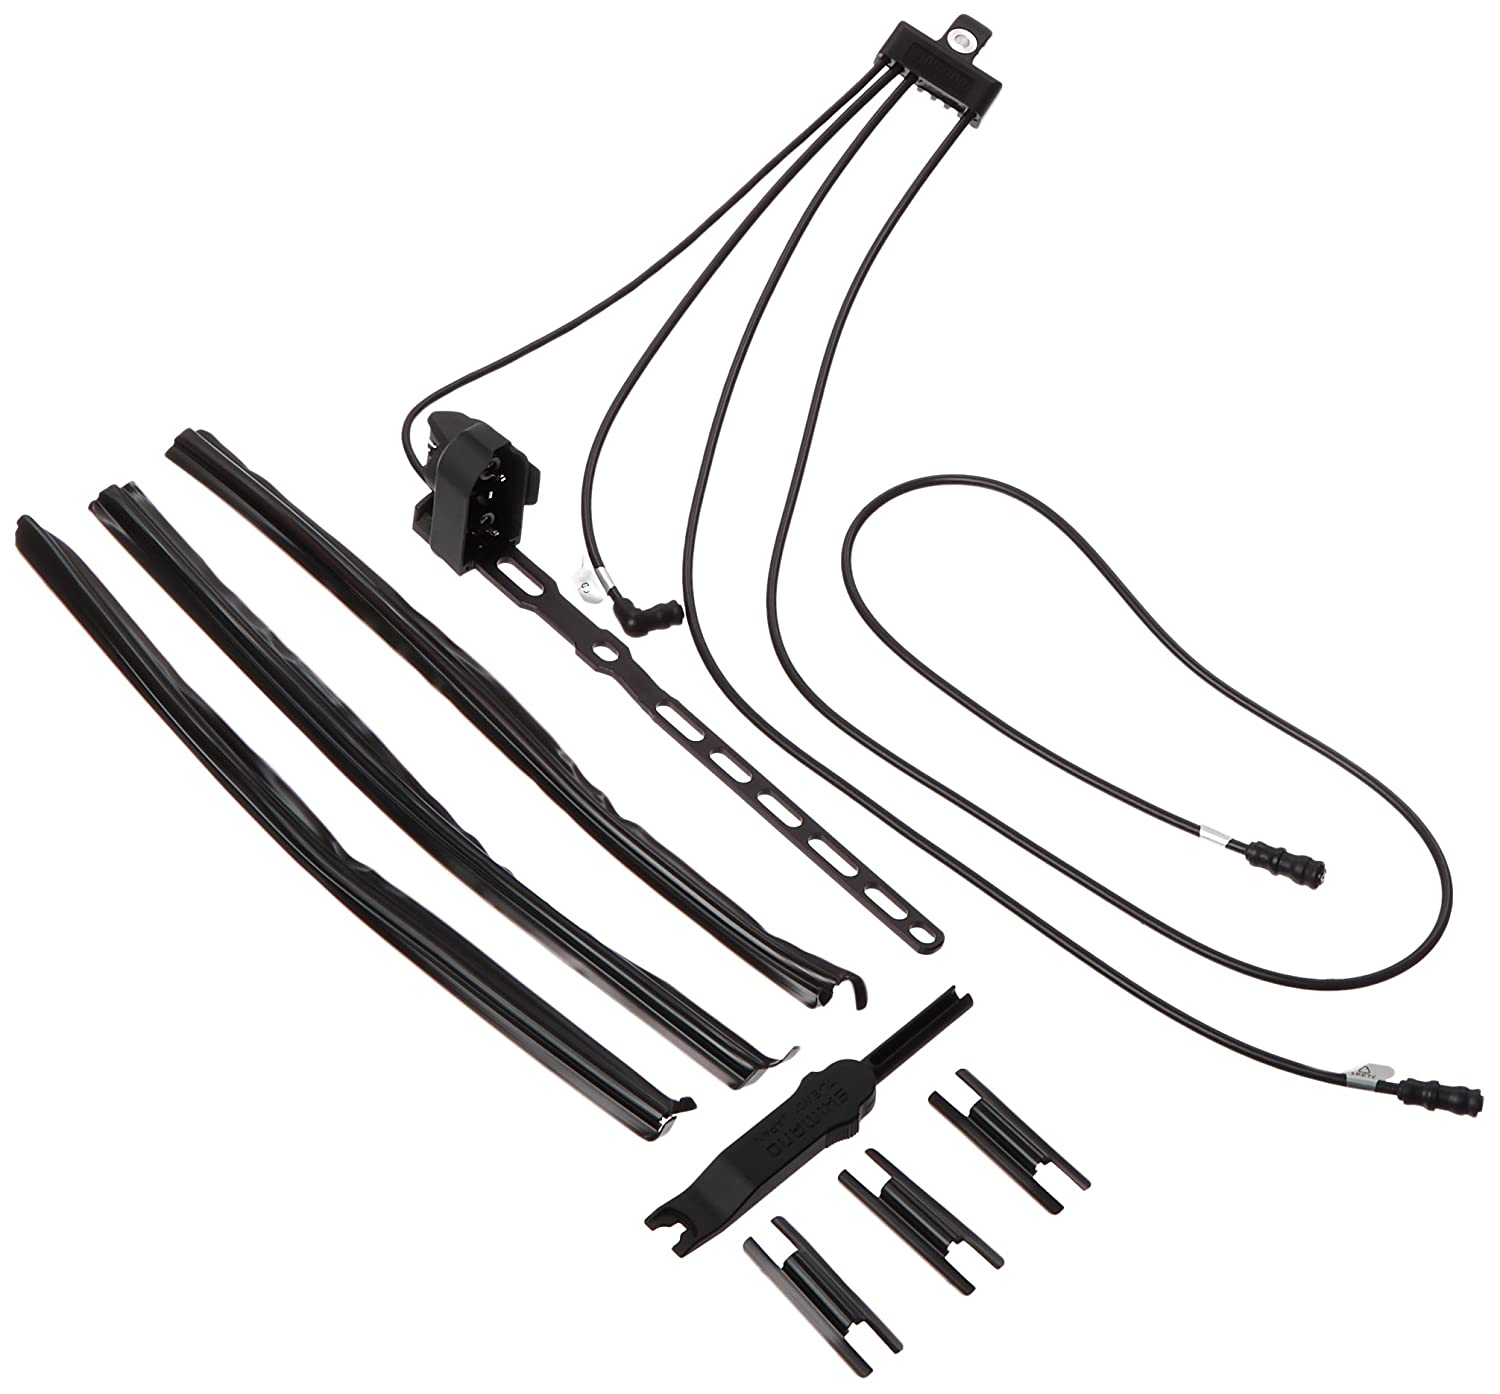 713ZdILLjBL._SL1500_ amazon com shimano dura ace 7970 rear wire kit sports & outdoors wire harness diagram at gsmx.co